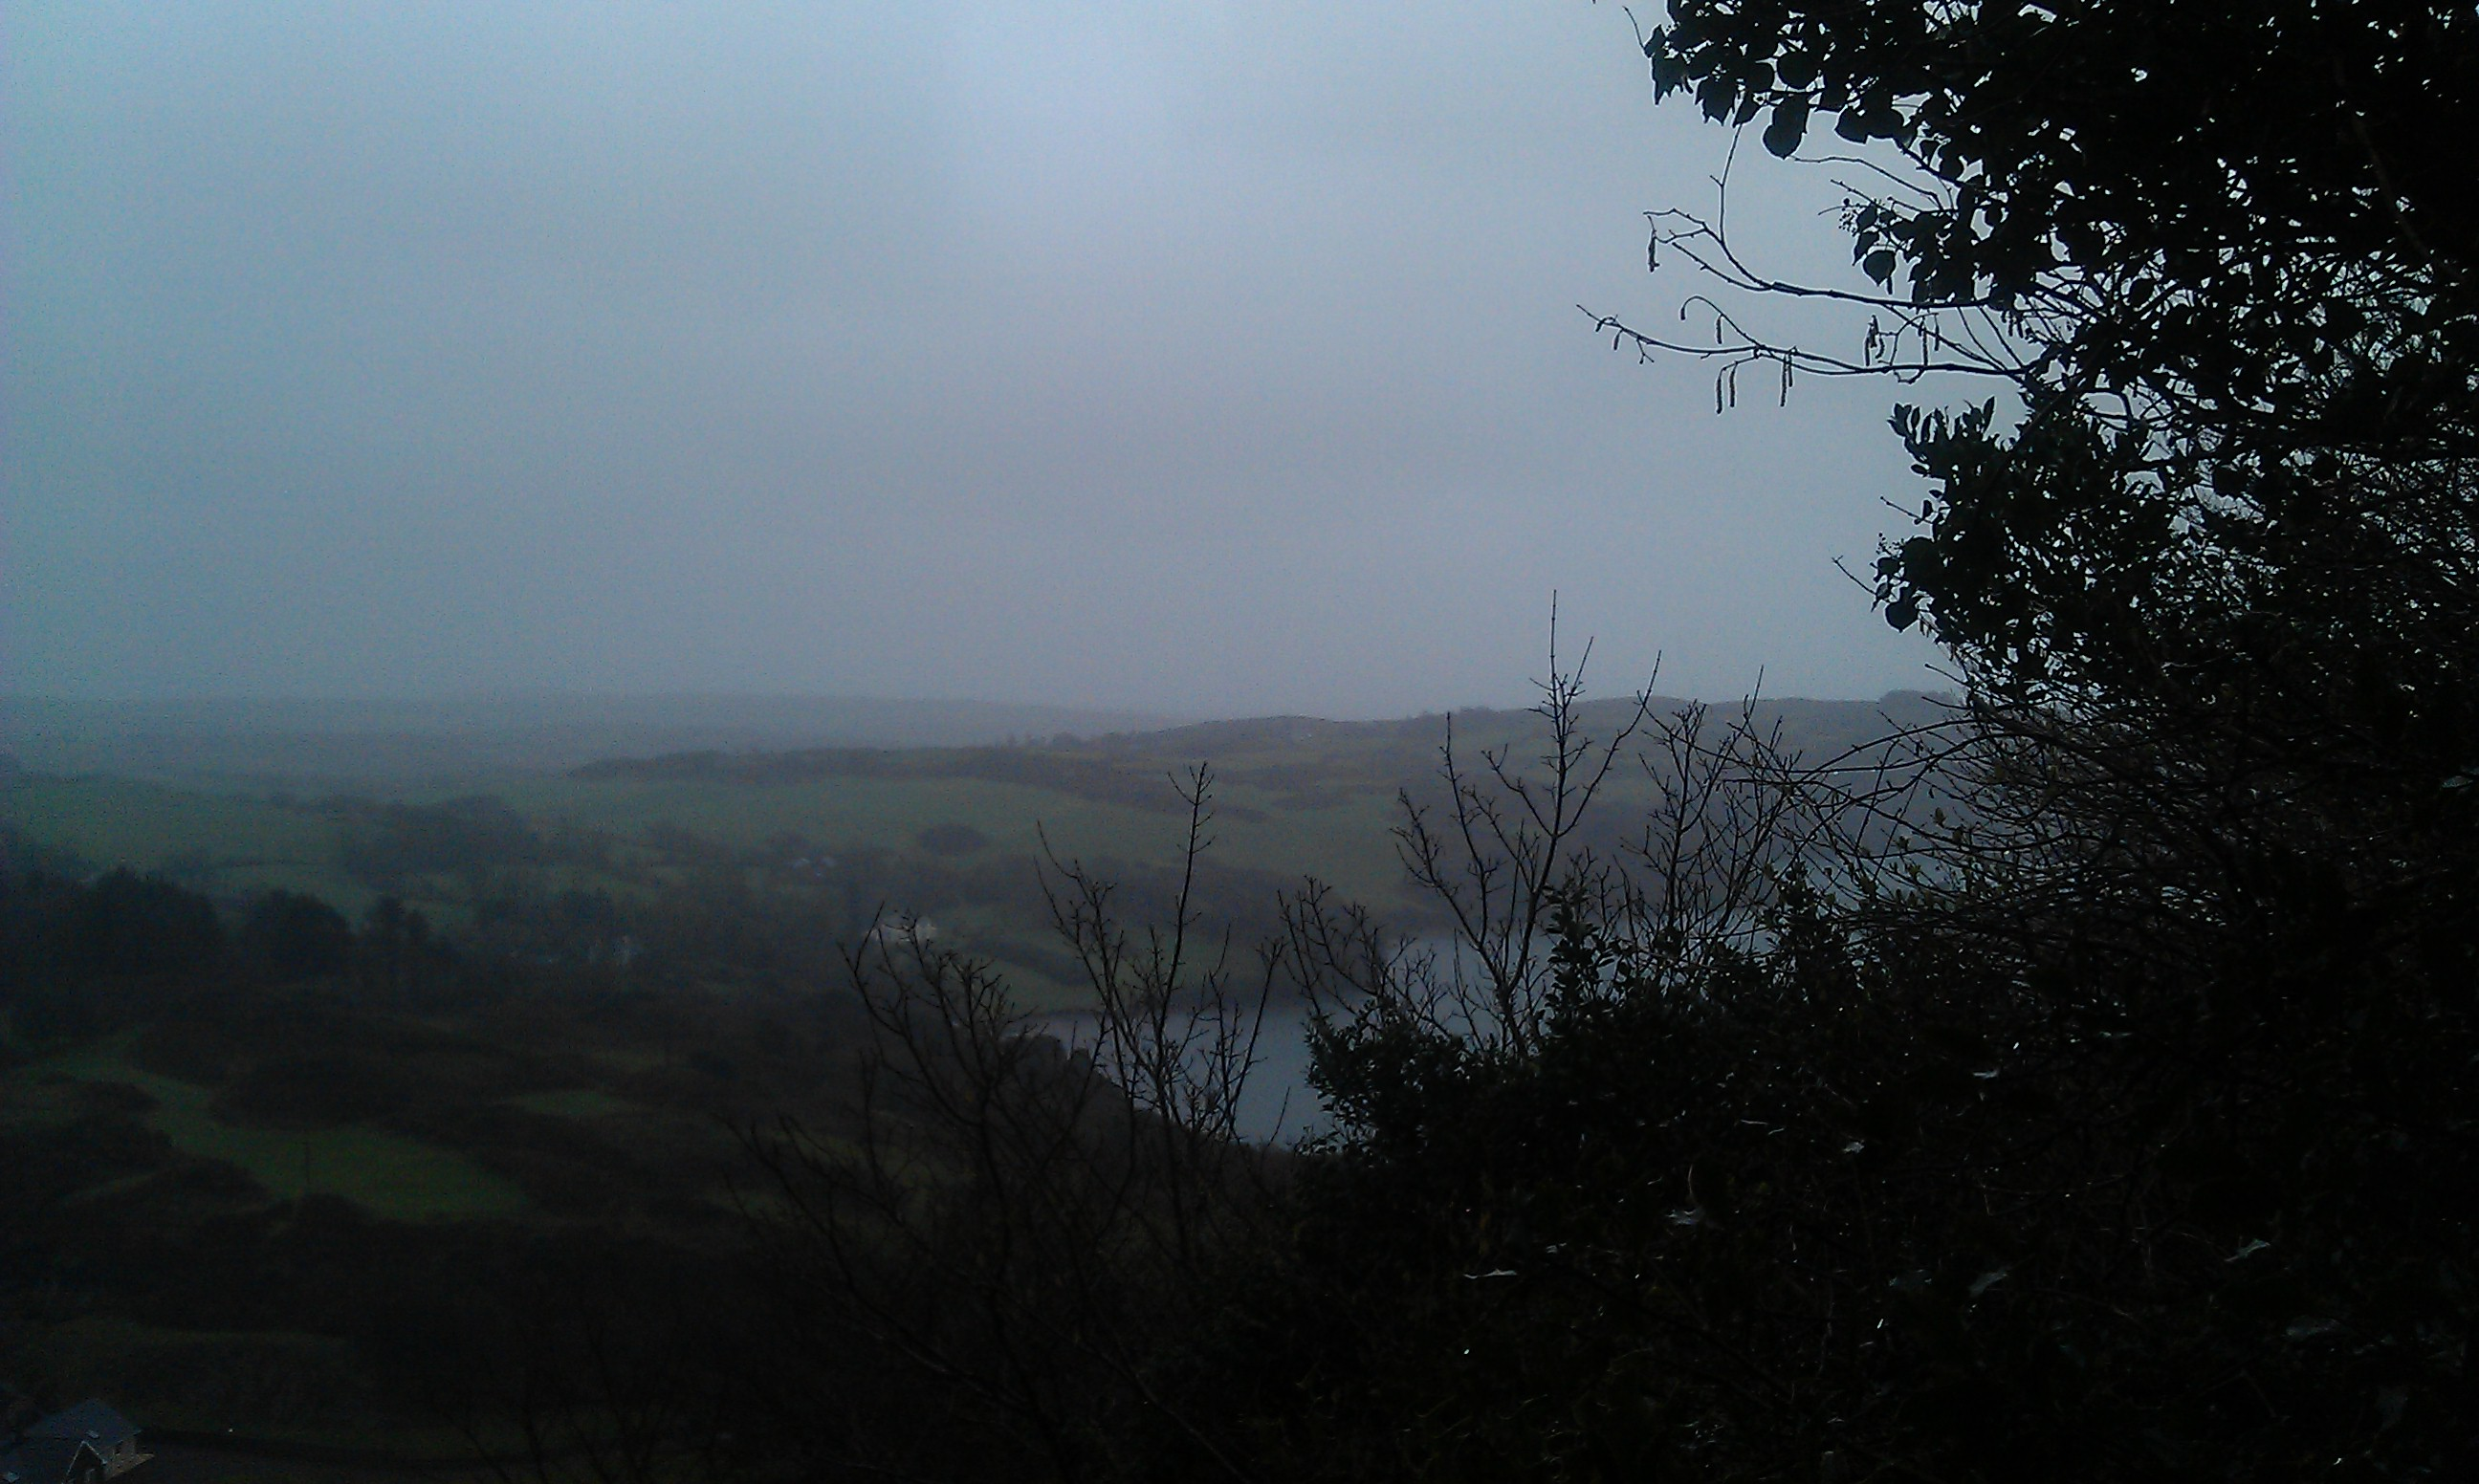 Overlooking a mist encovered Lough